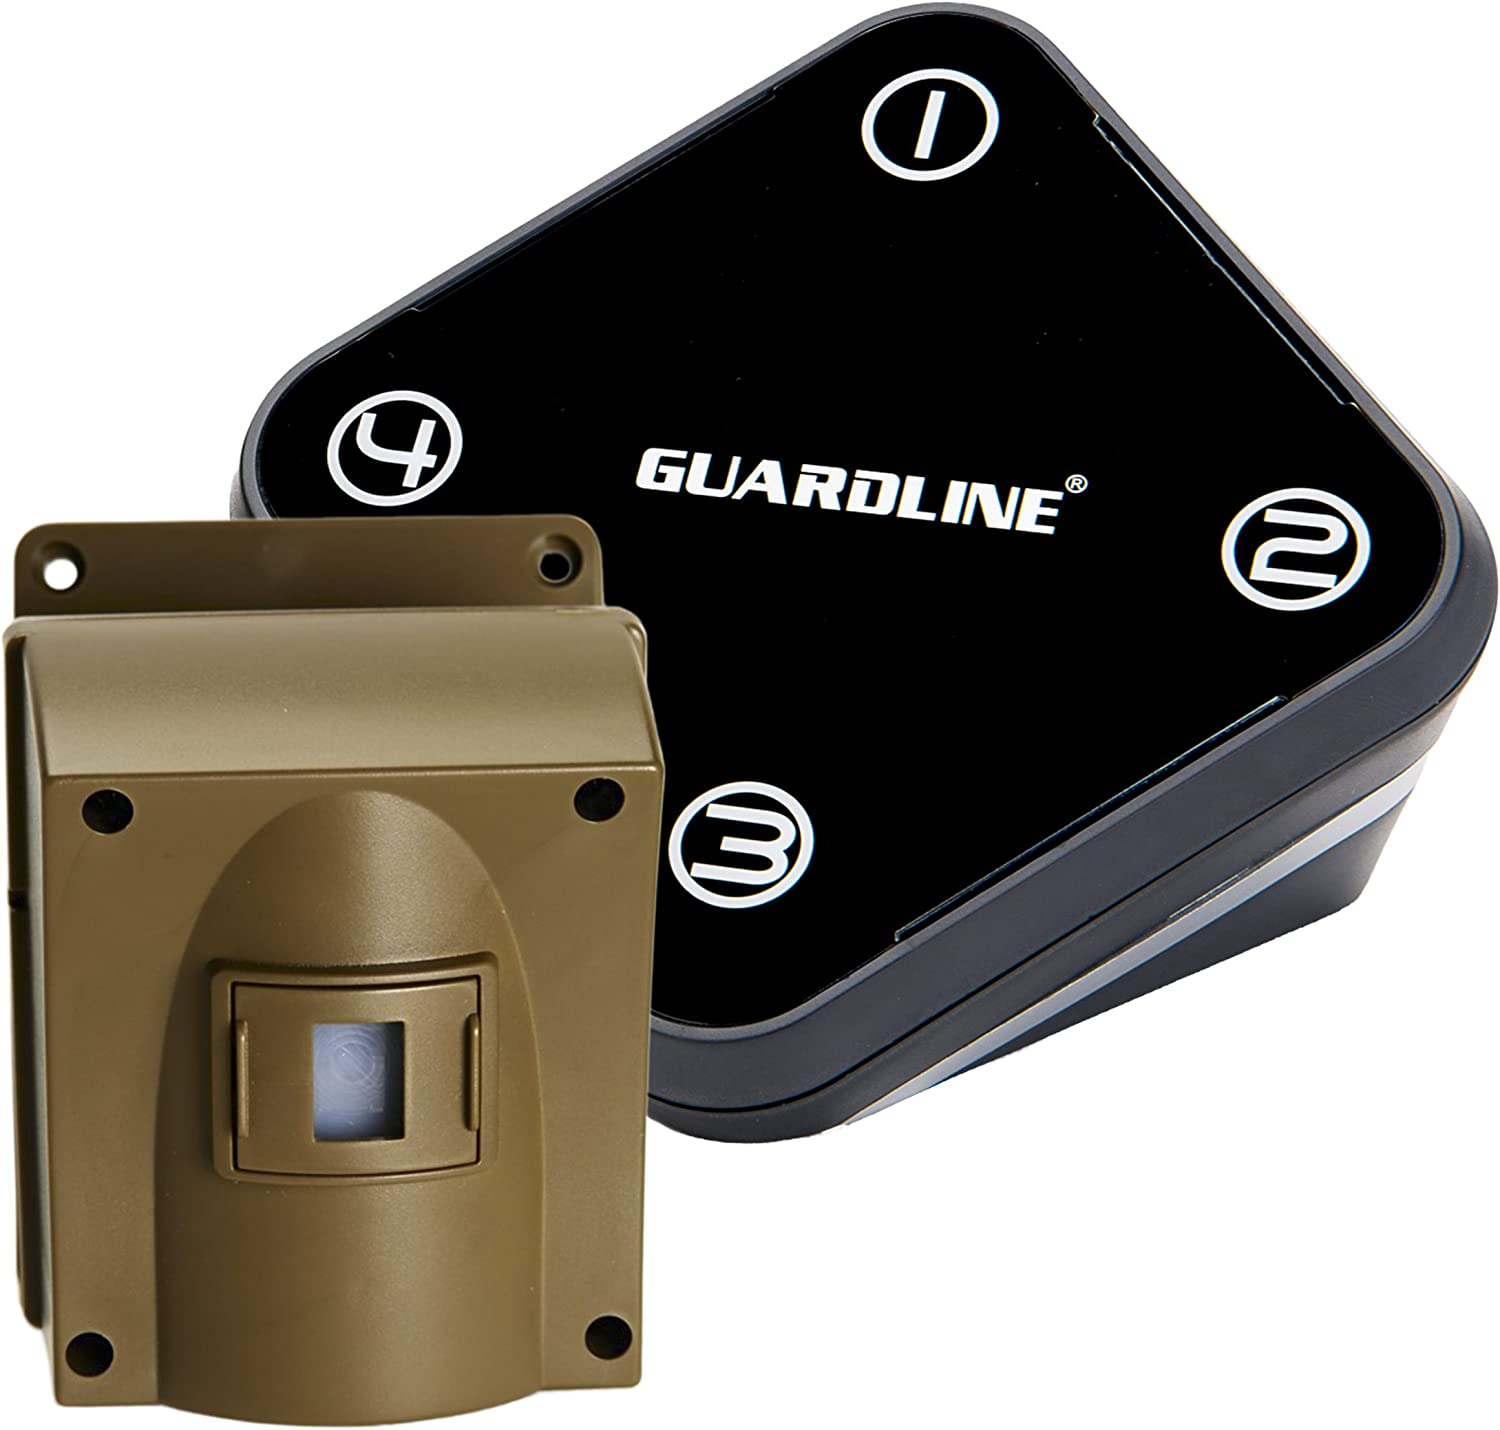 Guardline Wireless Driveway Alarm Outdoor Weather Resistant Motion Sensor